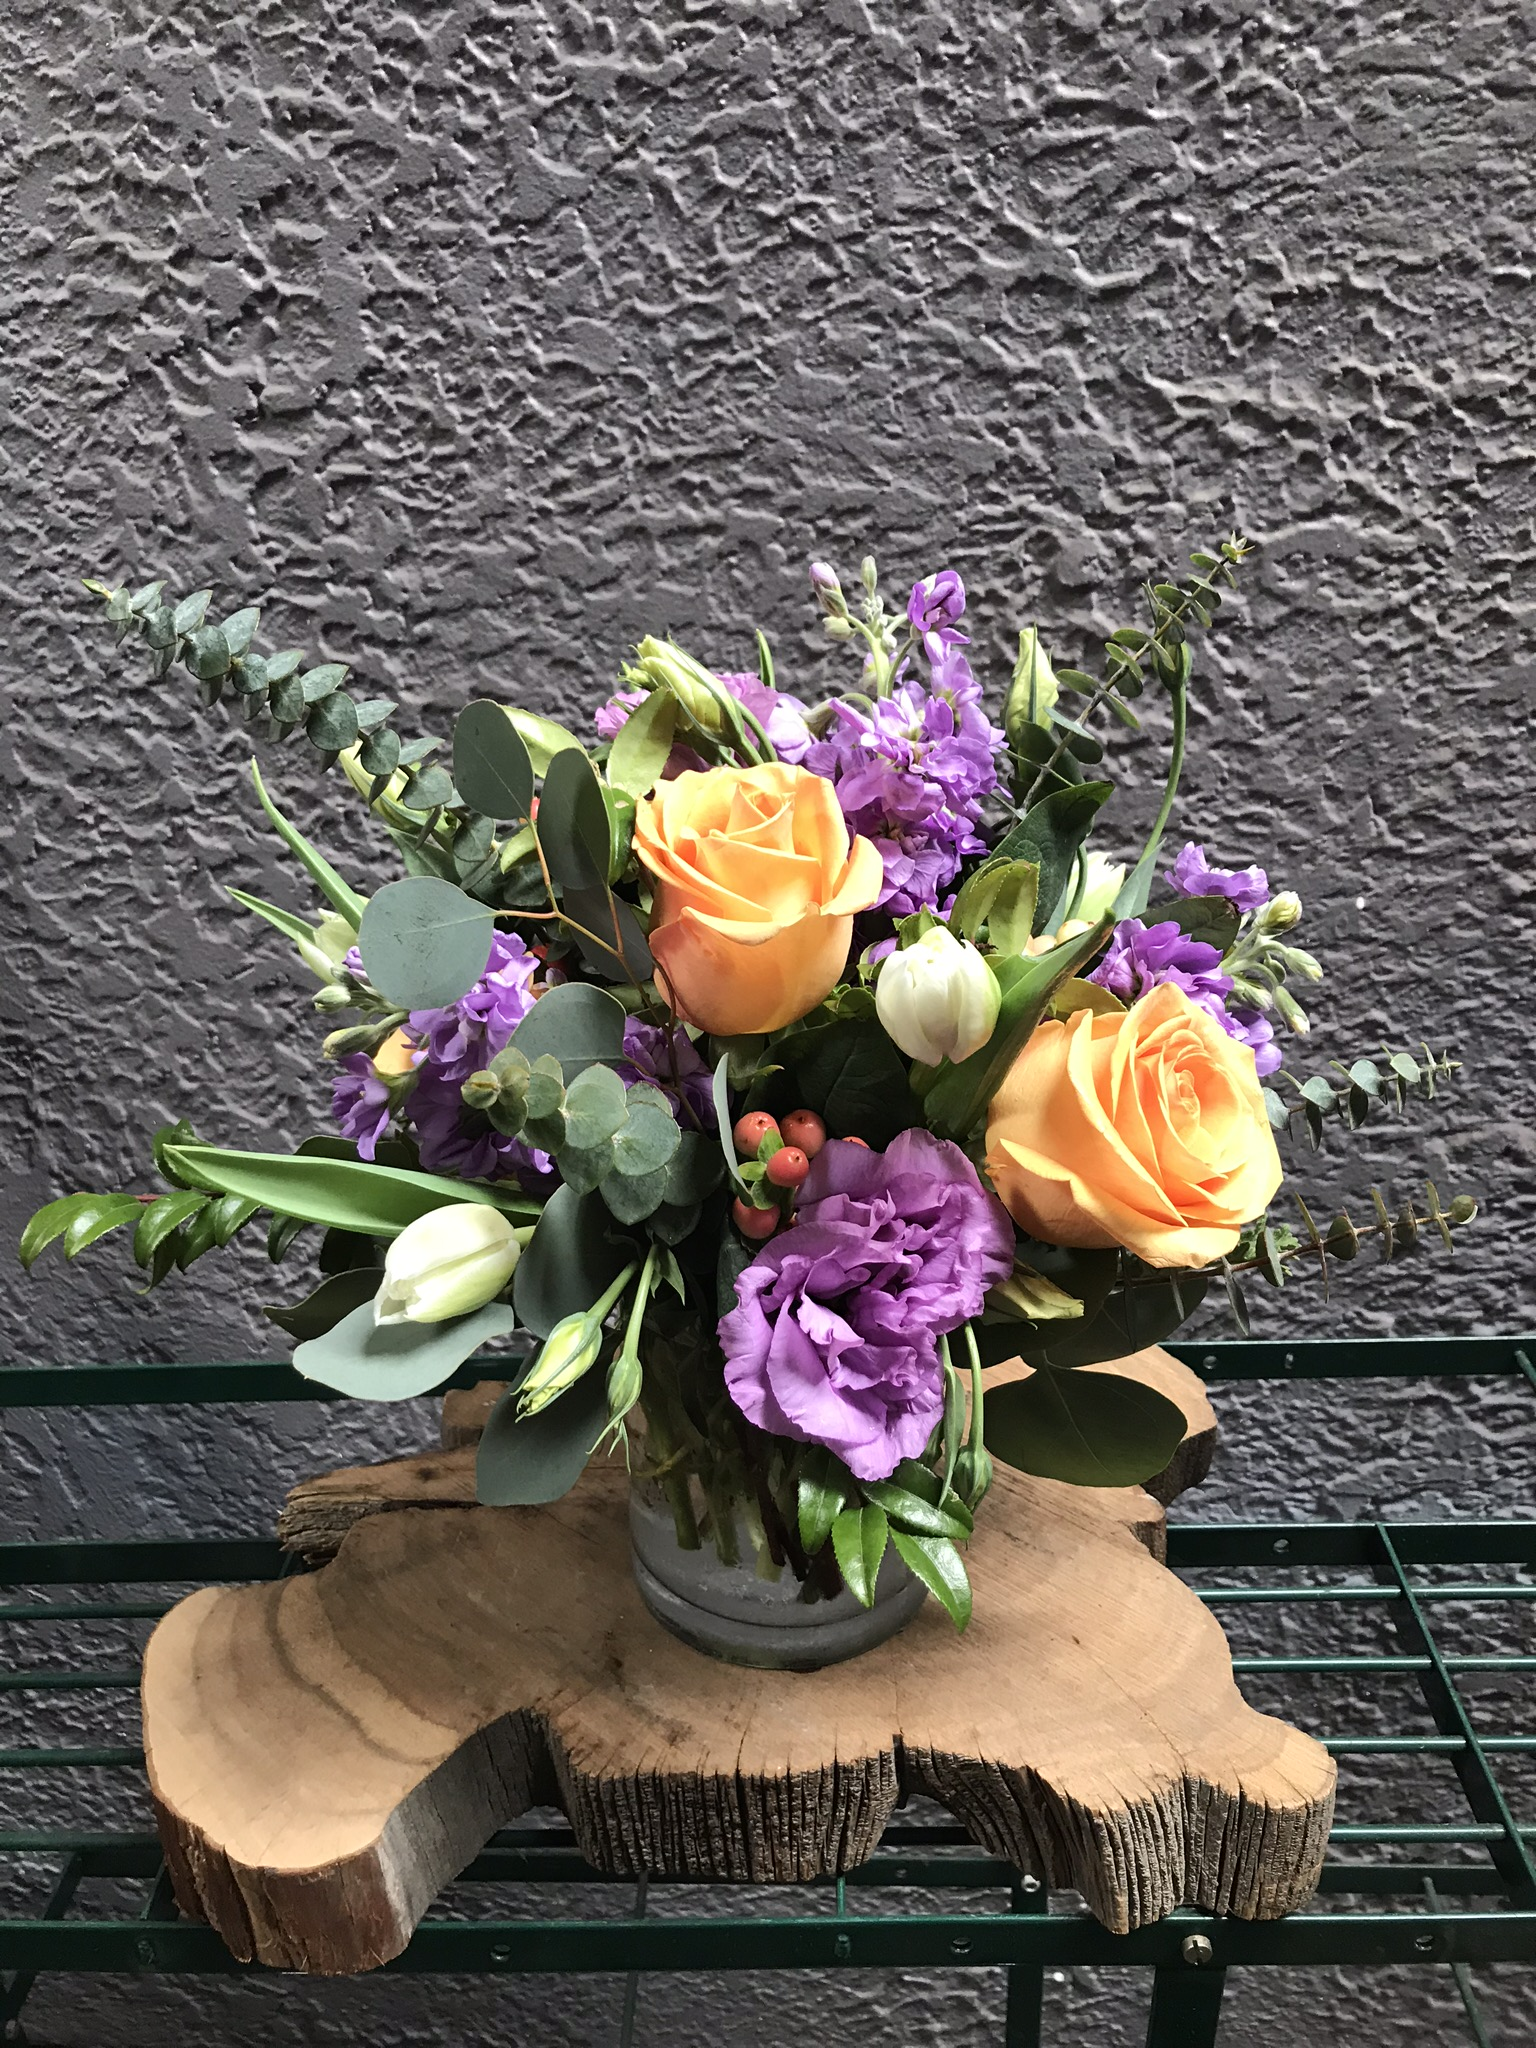 6. Subtle contrast in peach and lavender